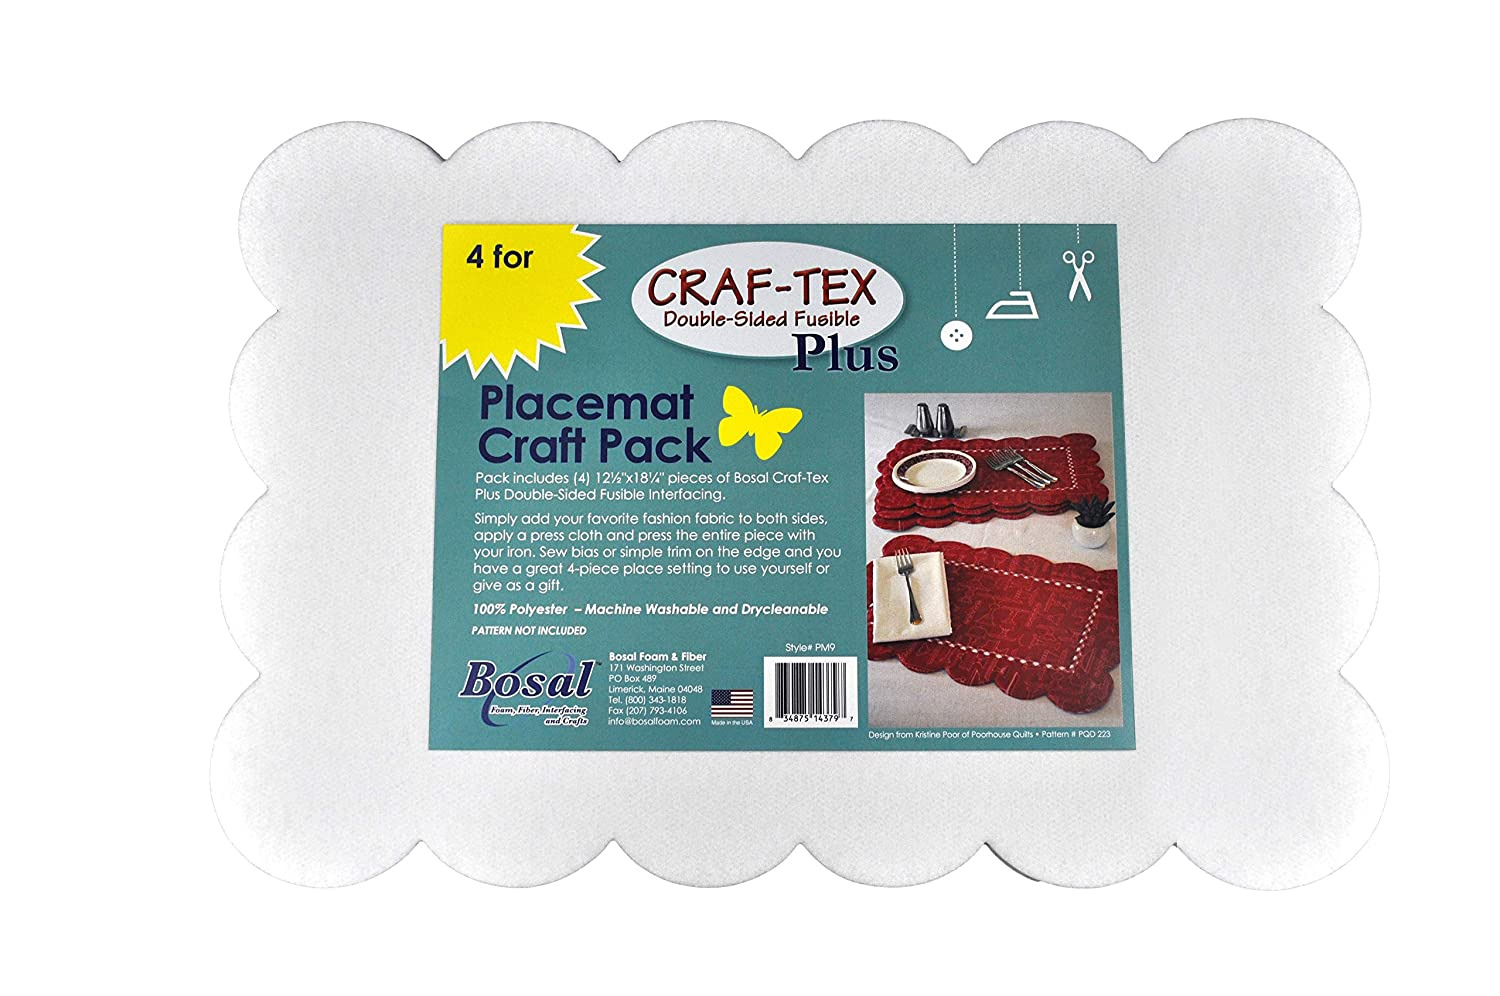 Bosal Double-Sided Fusible Interfacing Placemat Craft Pack Iron On Craft Project